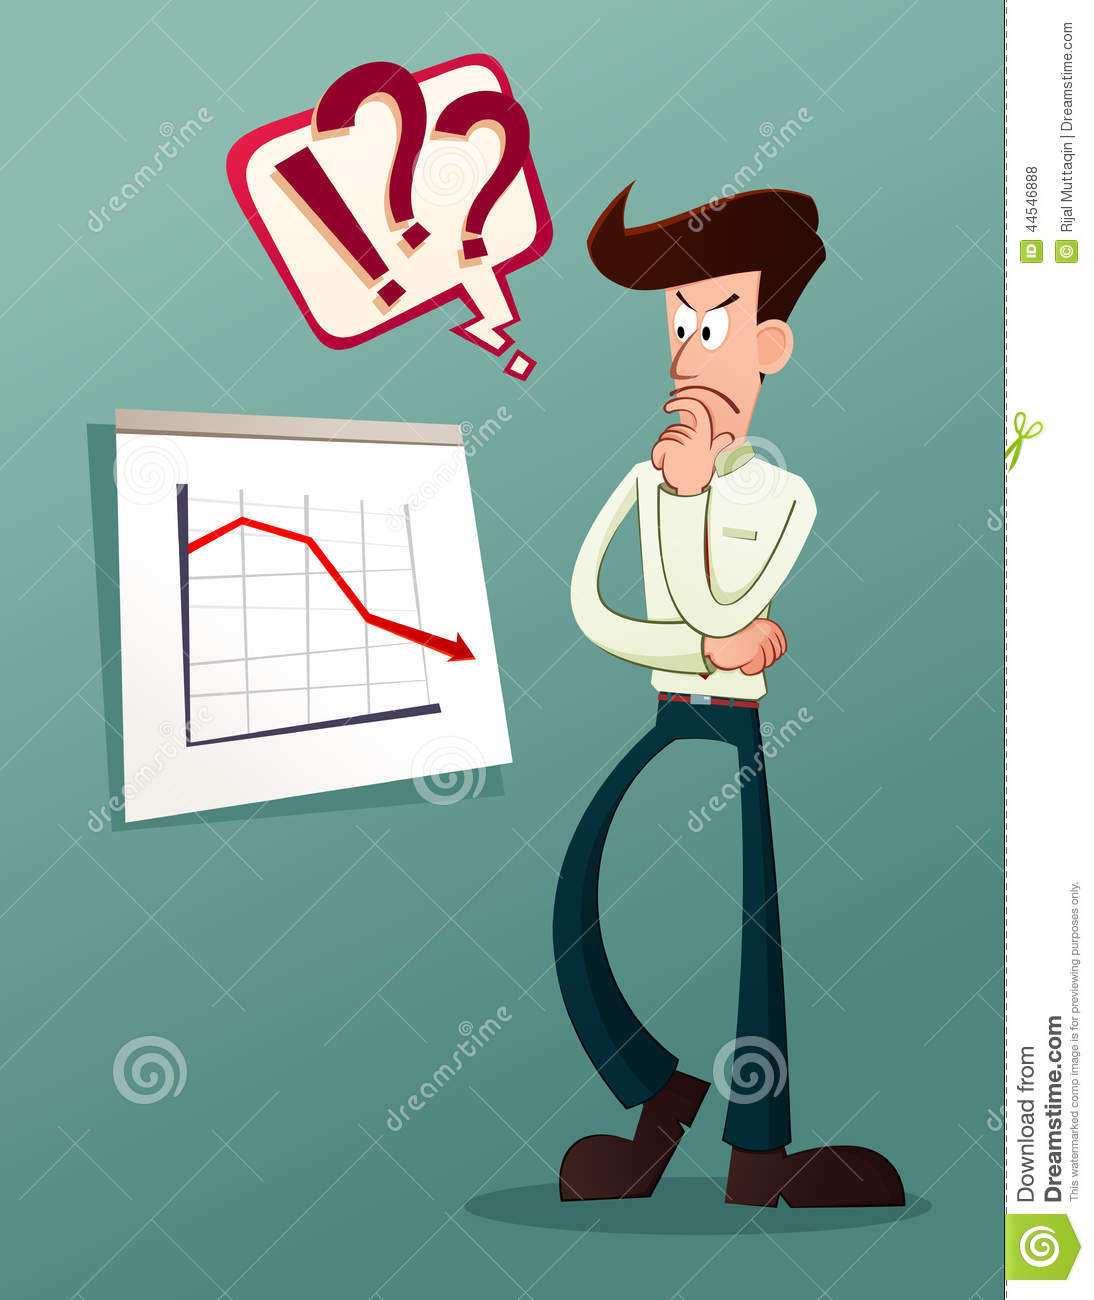 Analyze Business Result Stock Vector - Image: 44546888